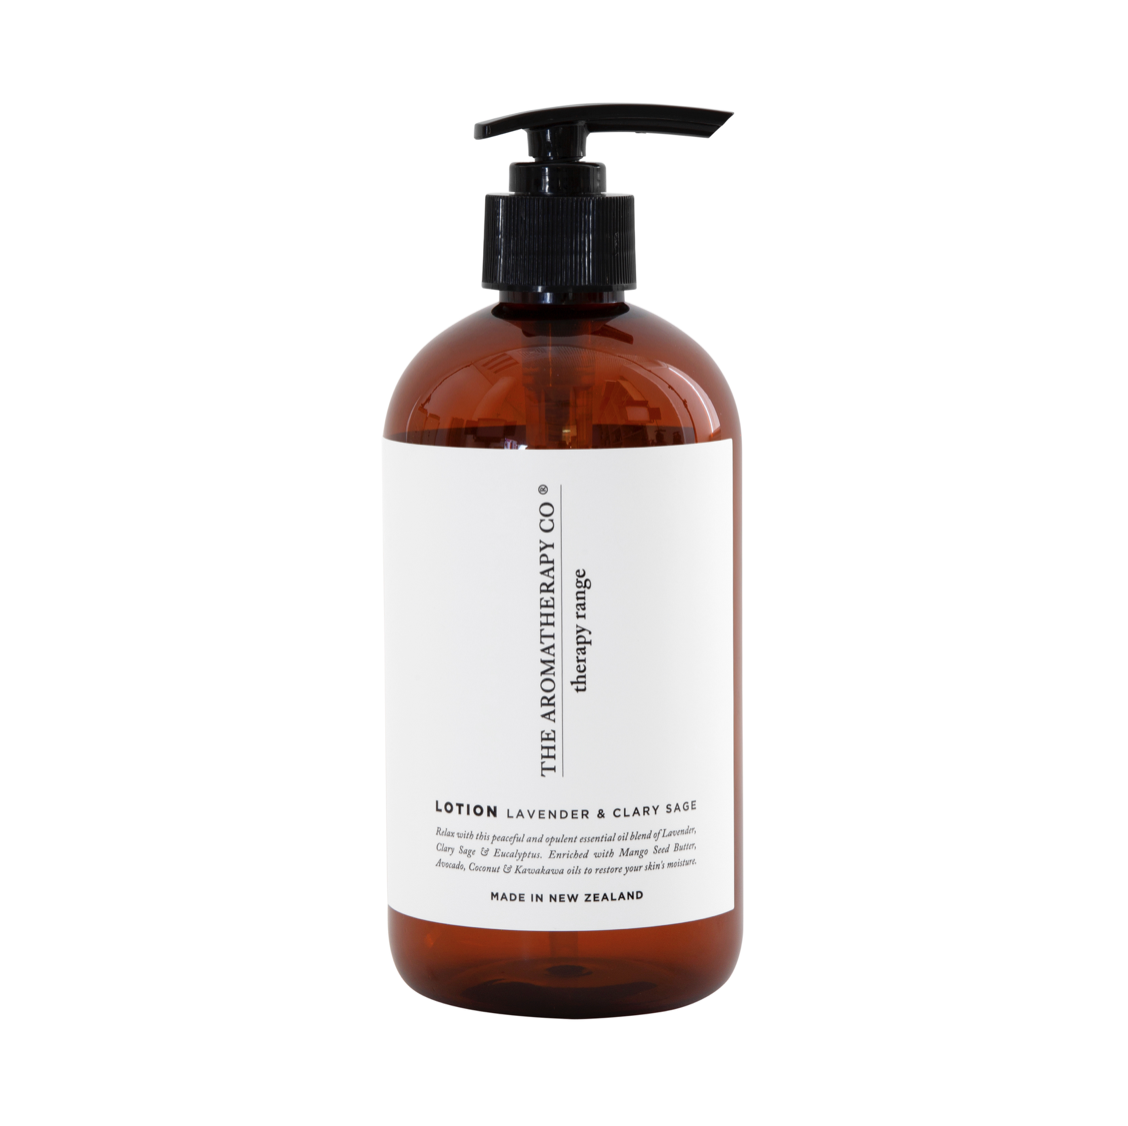 THERAPY HAND & BODY LOTION - RELAX - LAVENDER & CLARY SAGE